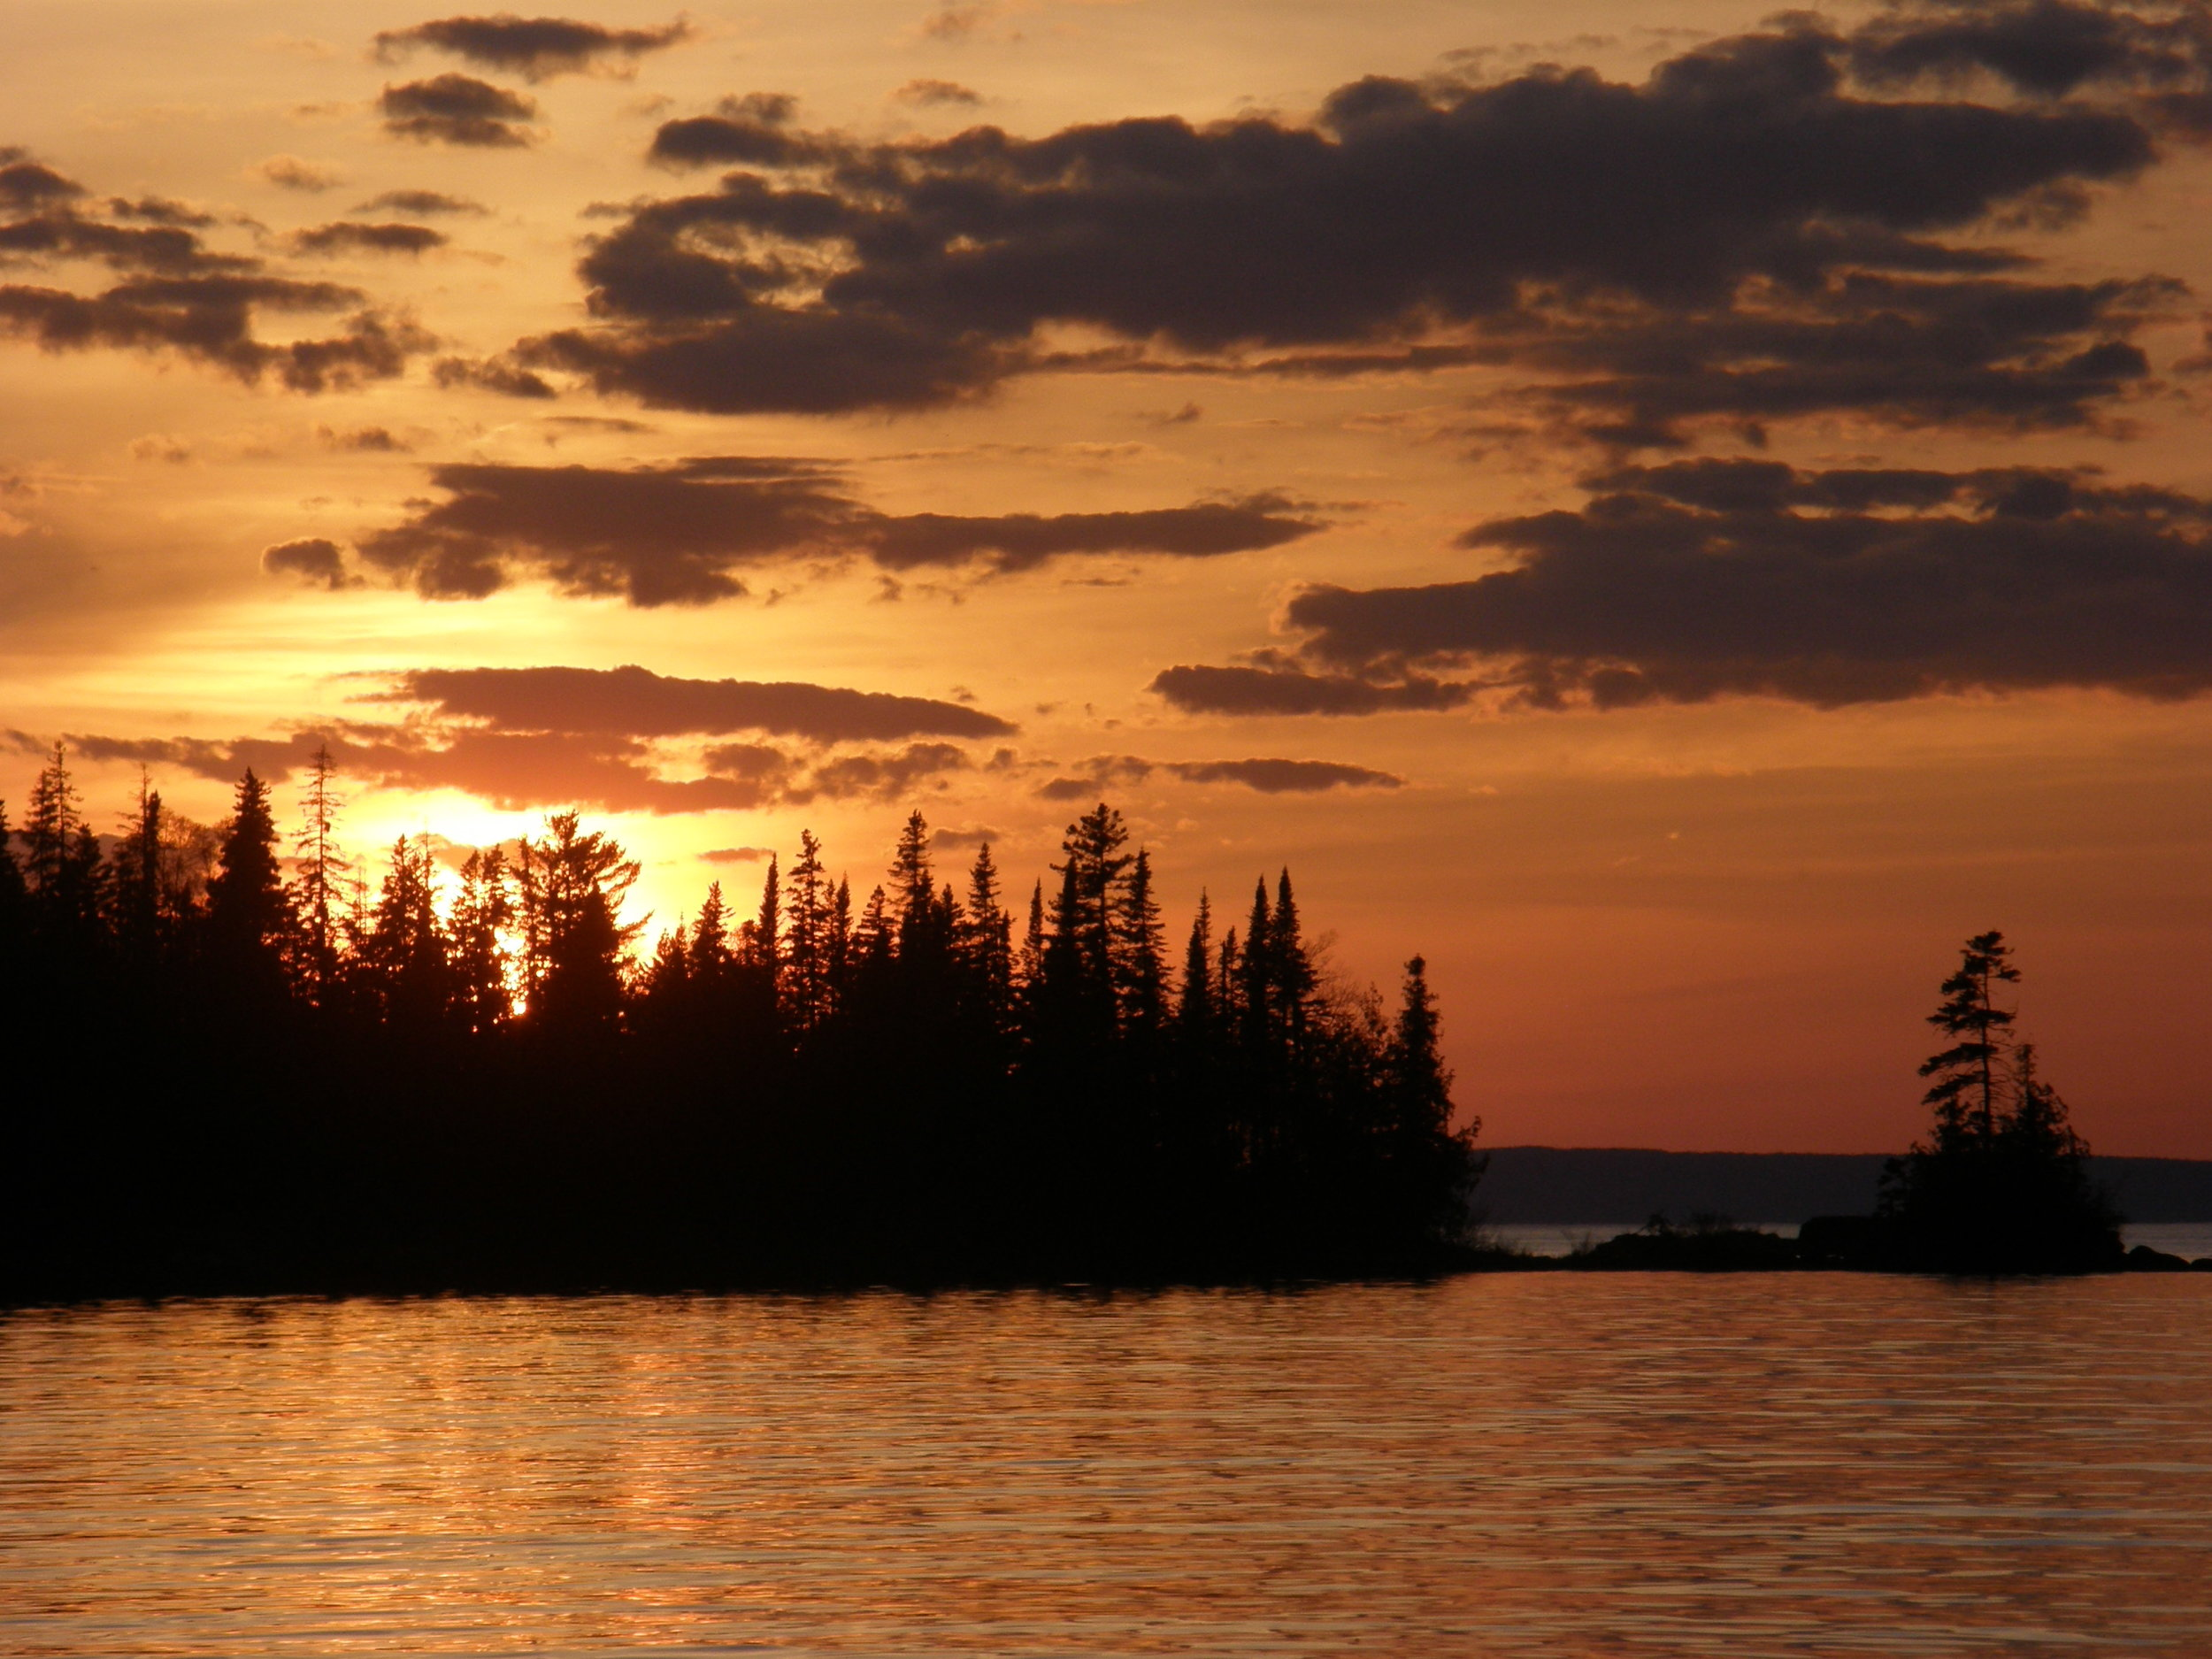 Isle Royale Nation Park (Lane Cove)